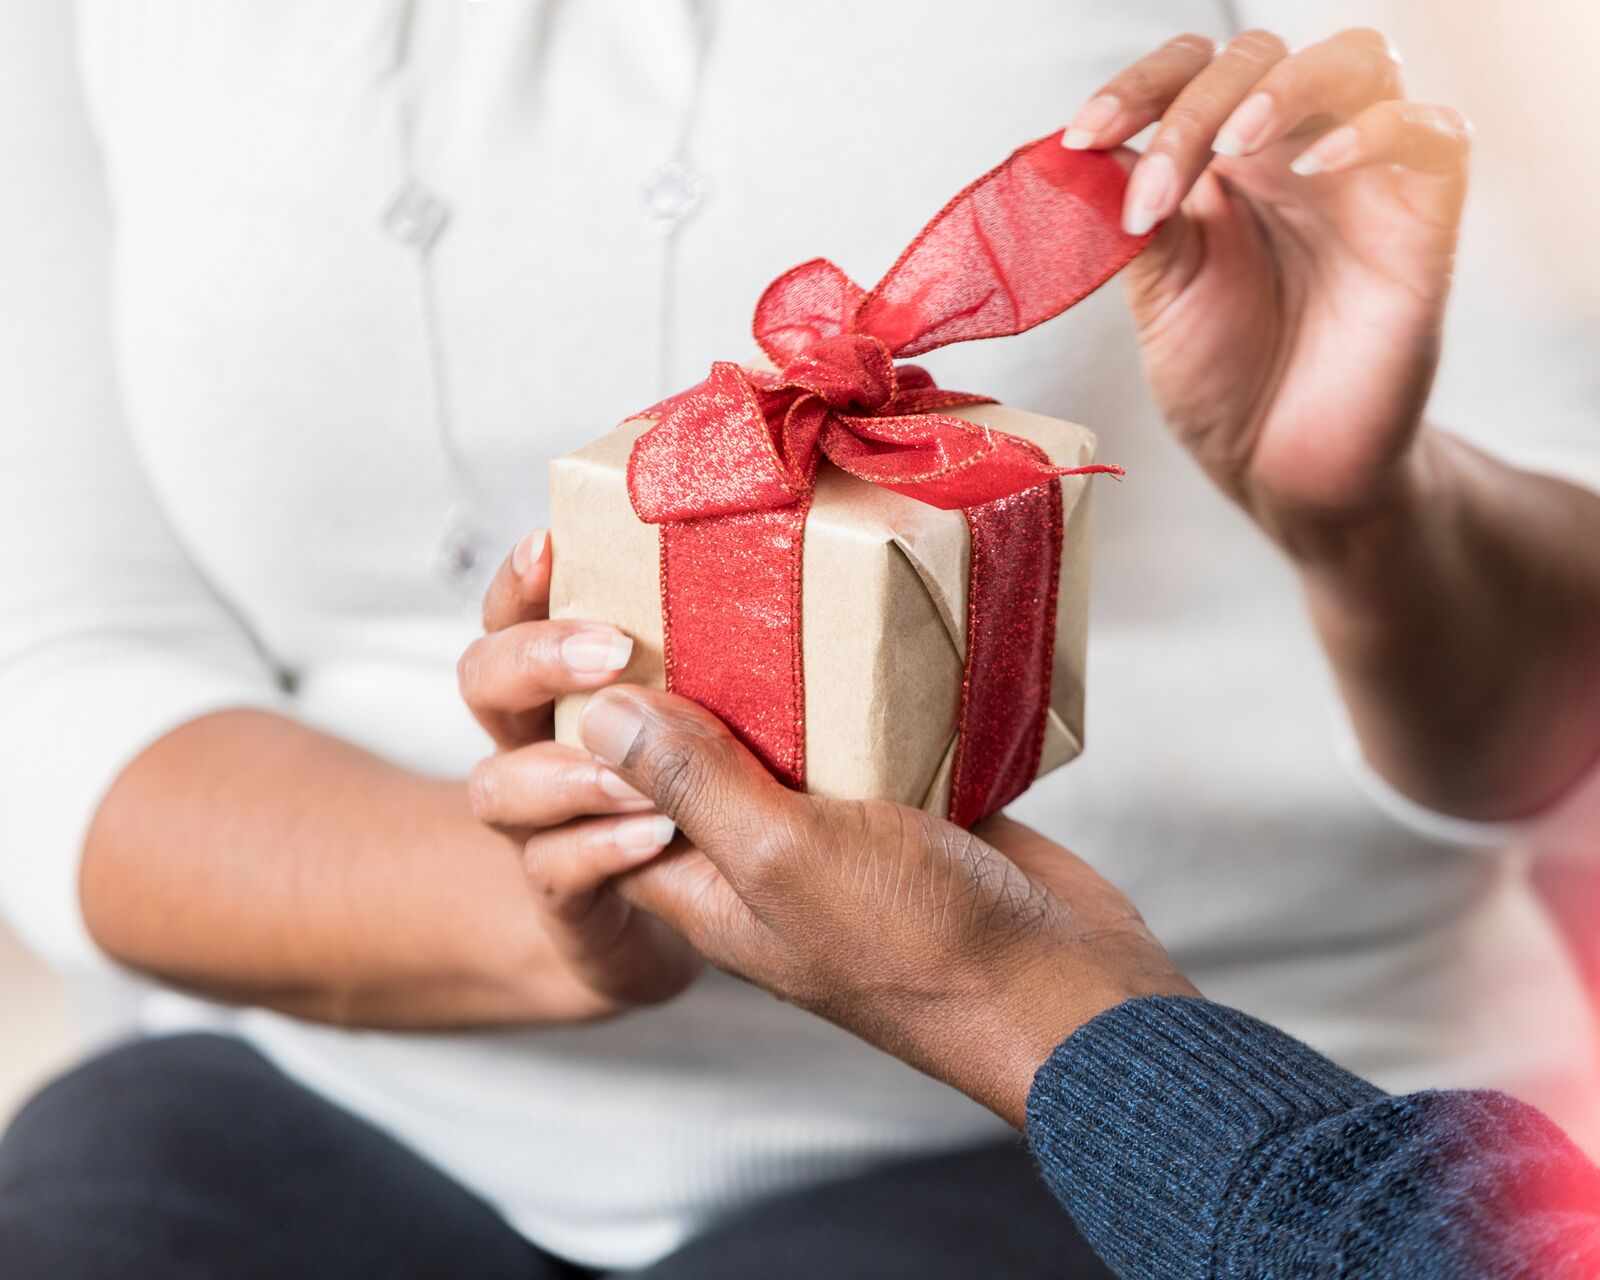 Discover the joys of giving personalized gifts